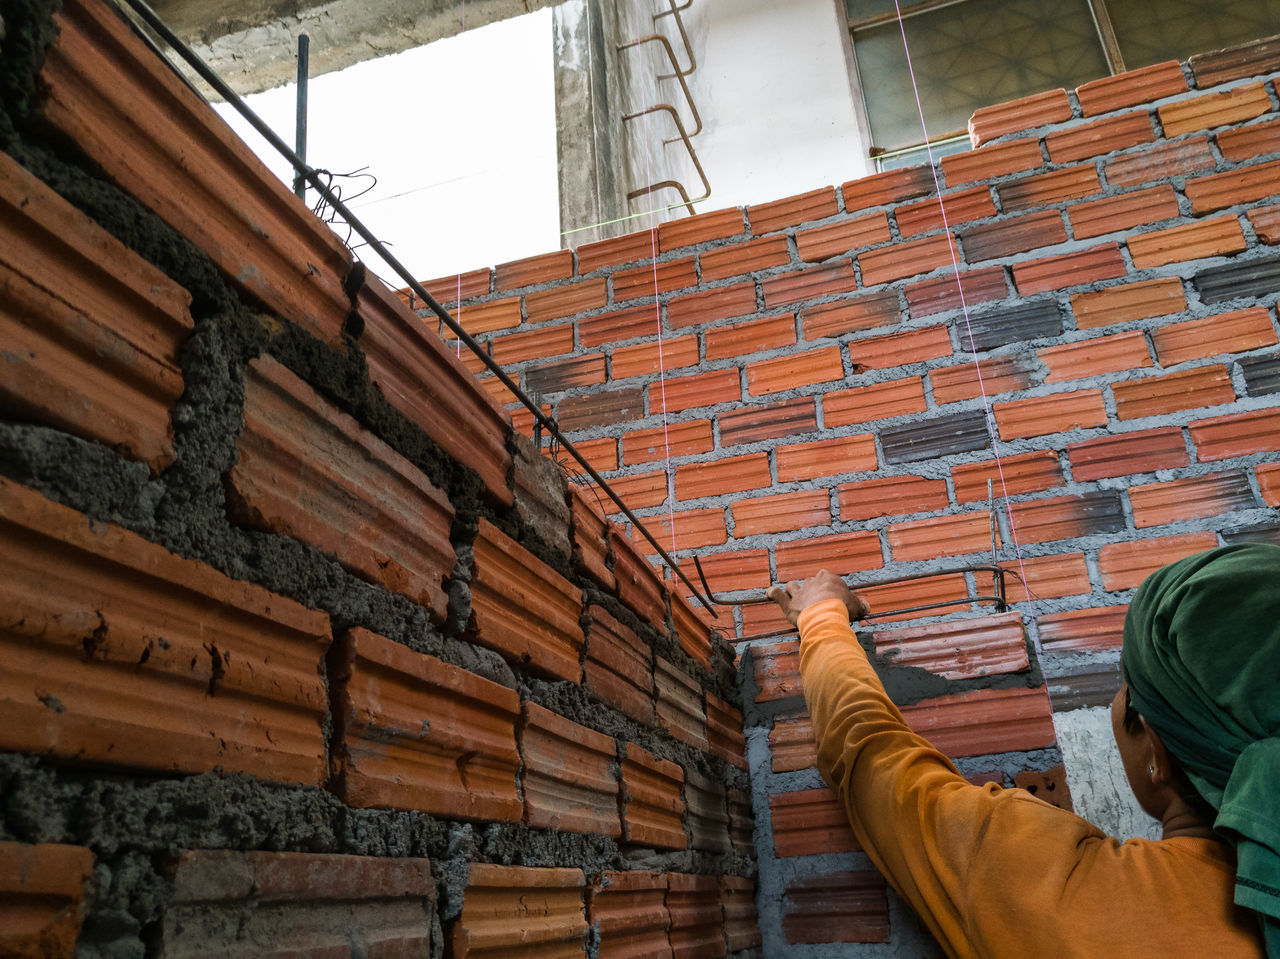 Installation of steel in the lintel of the wall construction with brick red, not gloss surface. Build Builder Building Construction Site Construction Work Lintel Redbricks Redbrickw Steelbar  Wall